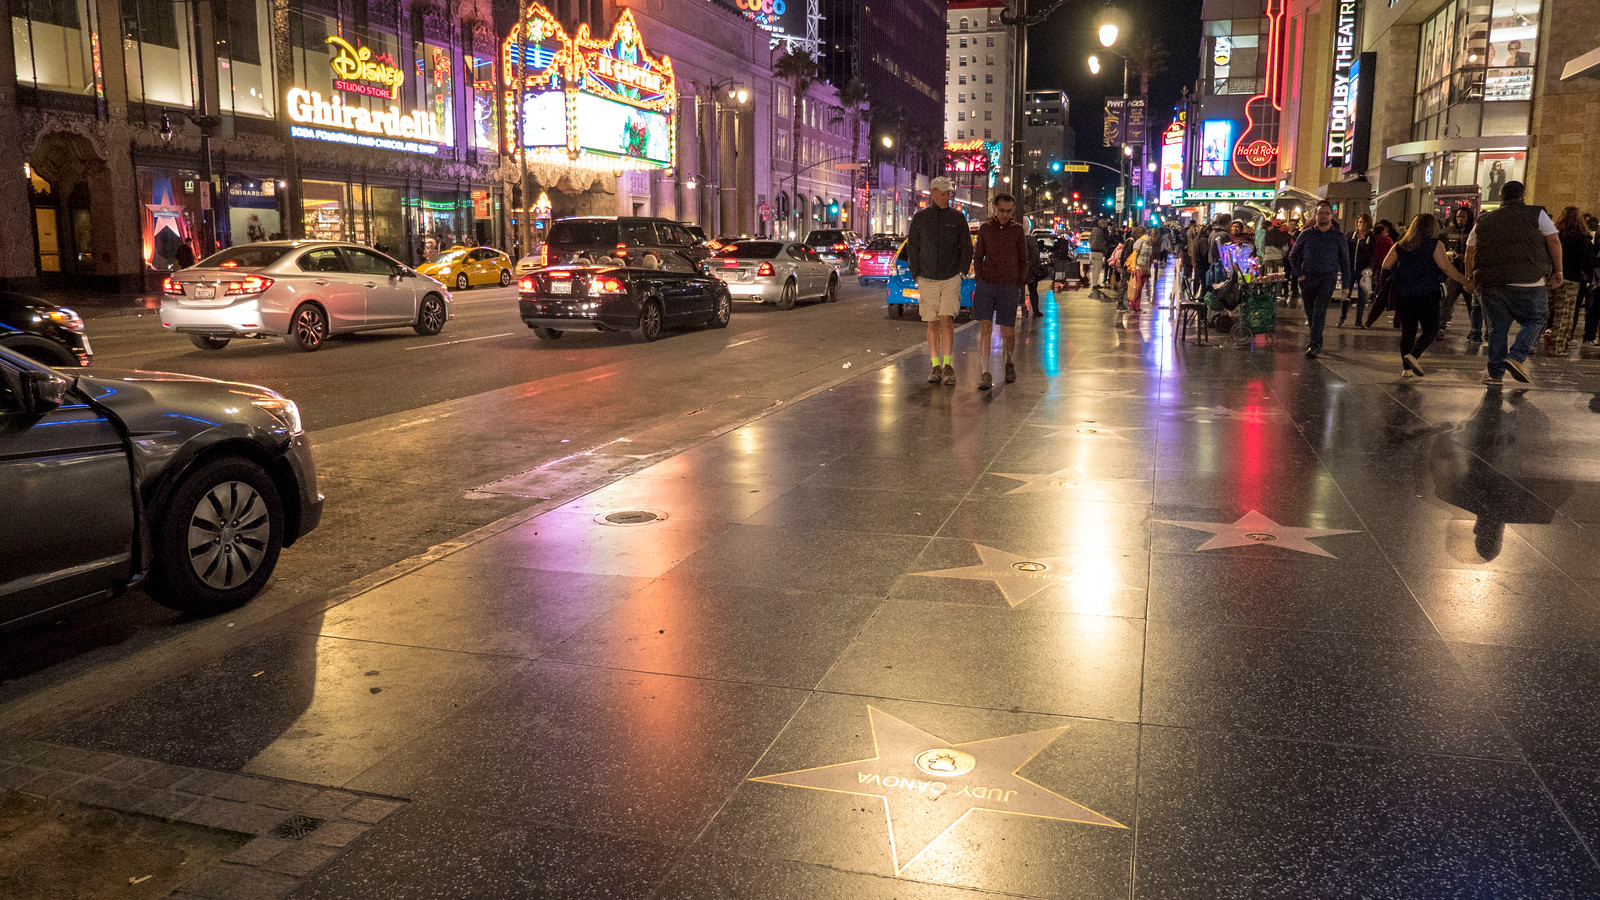 Hollywood Walk of Fame - 2 Days in Los Angeles Itinerary for First Timers